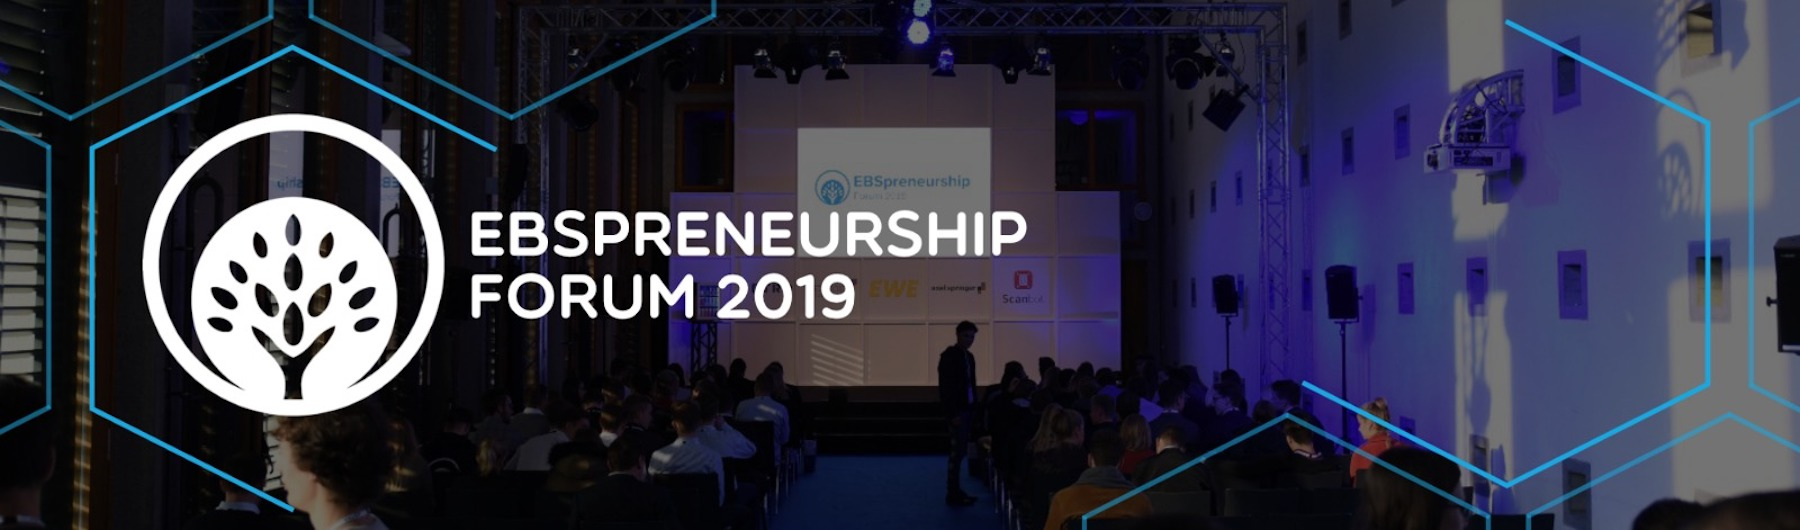 EBSpreneurship Forum 2019